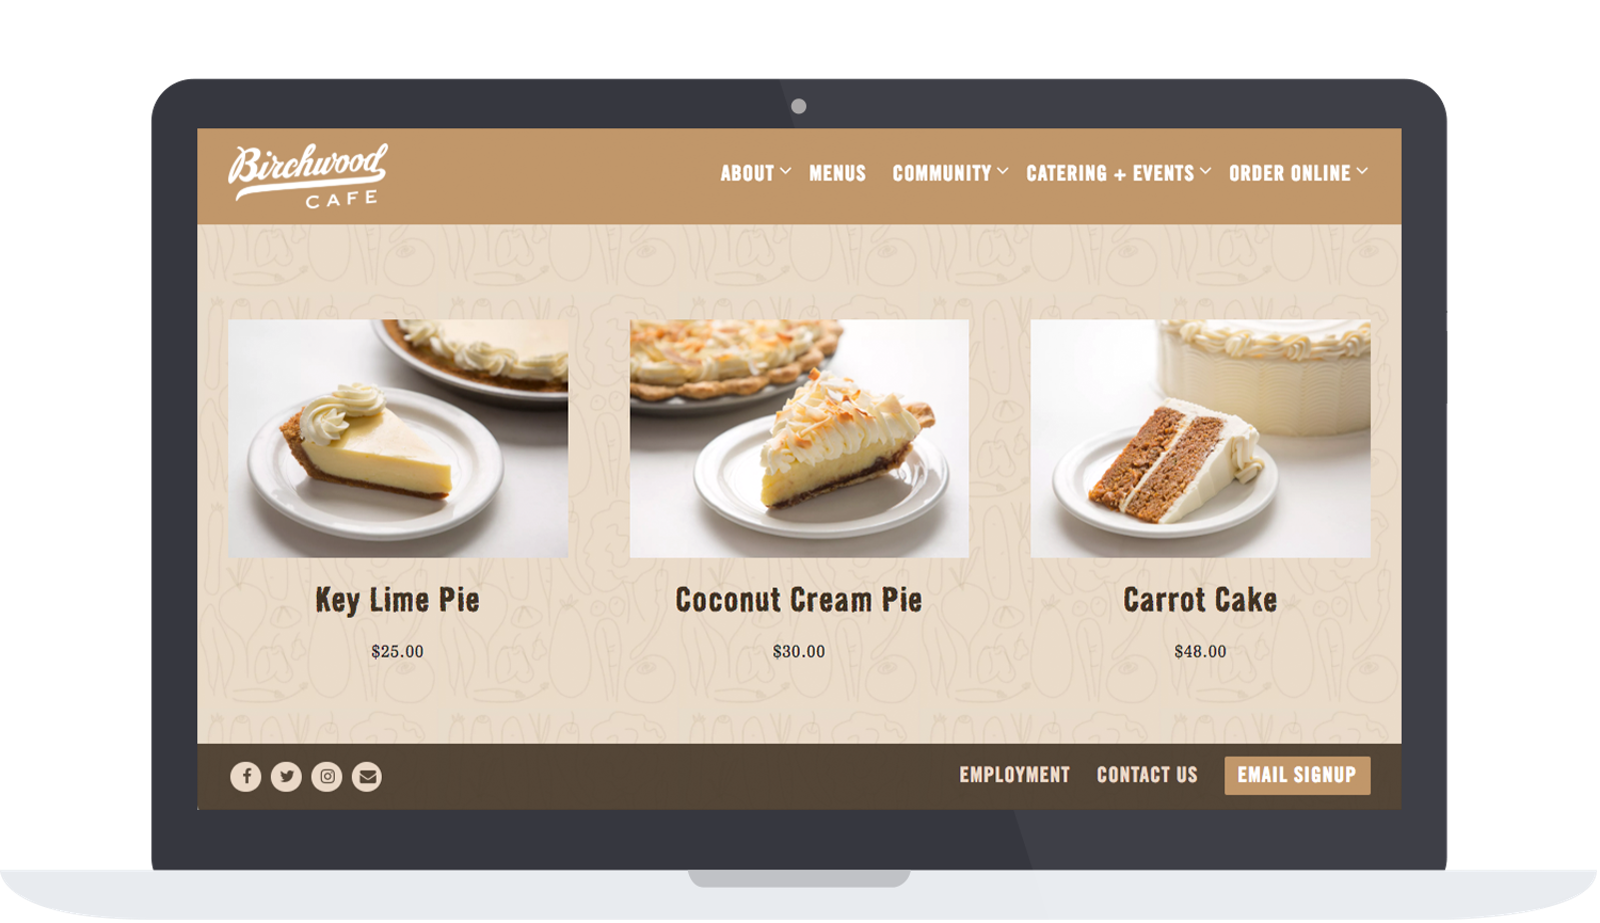 Birchwood Cafe's online store